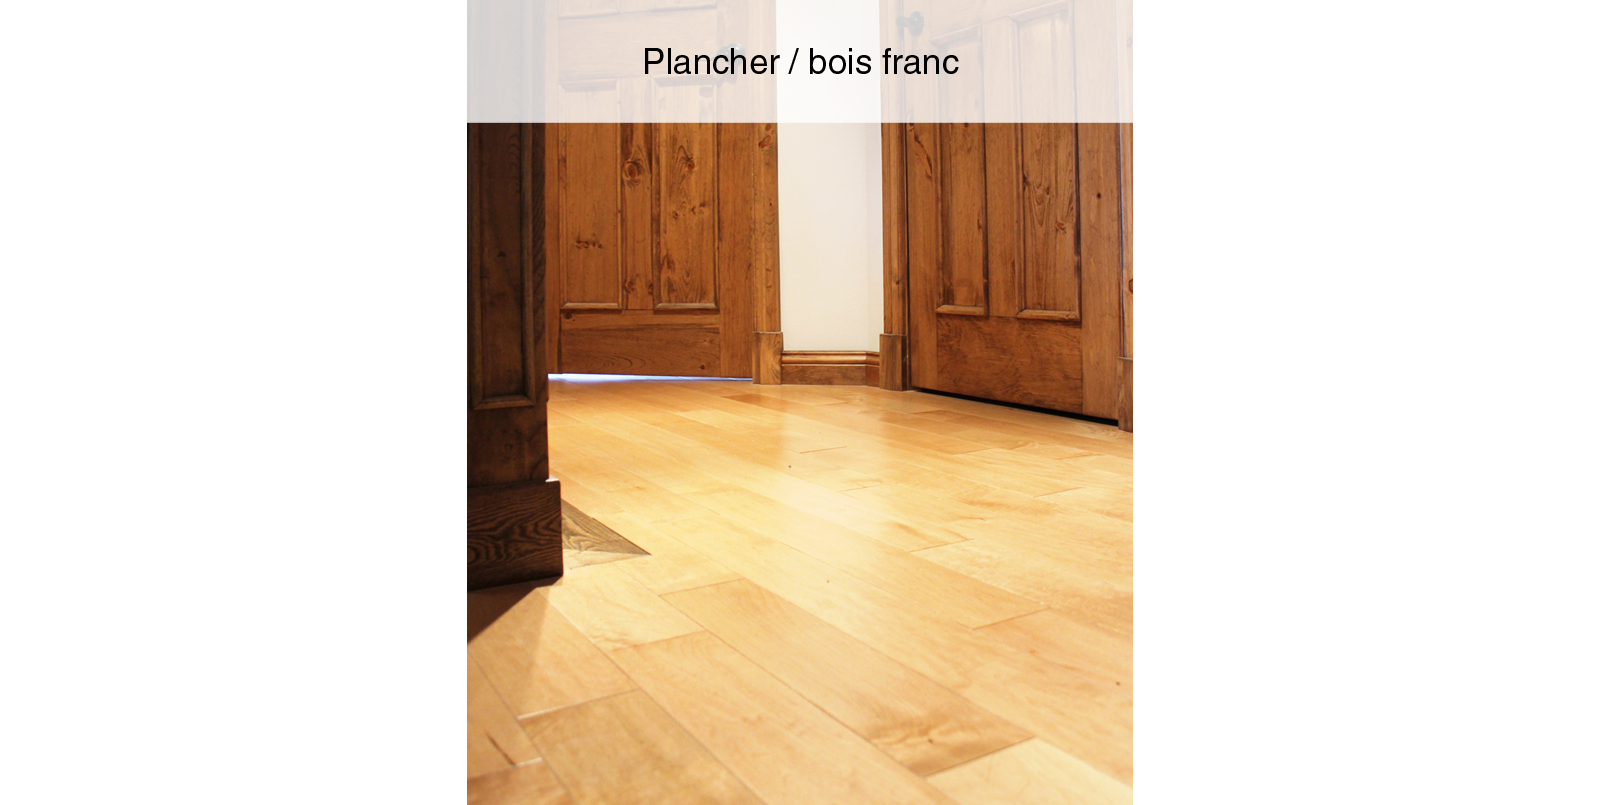 28-1-PANACHE-CONSTRUCTION-RENOVATION-PLANCHER-BOIS-FRANC